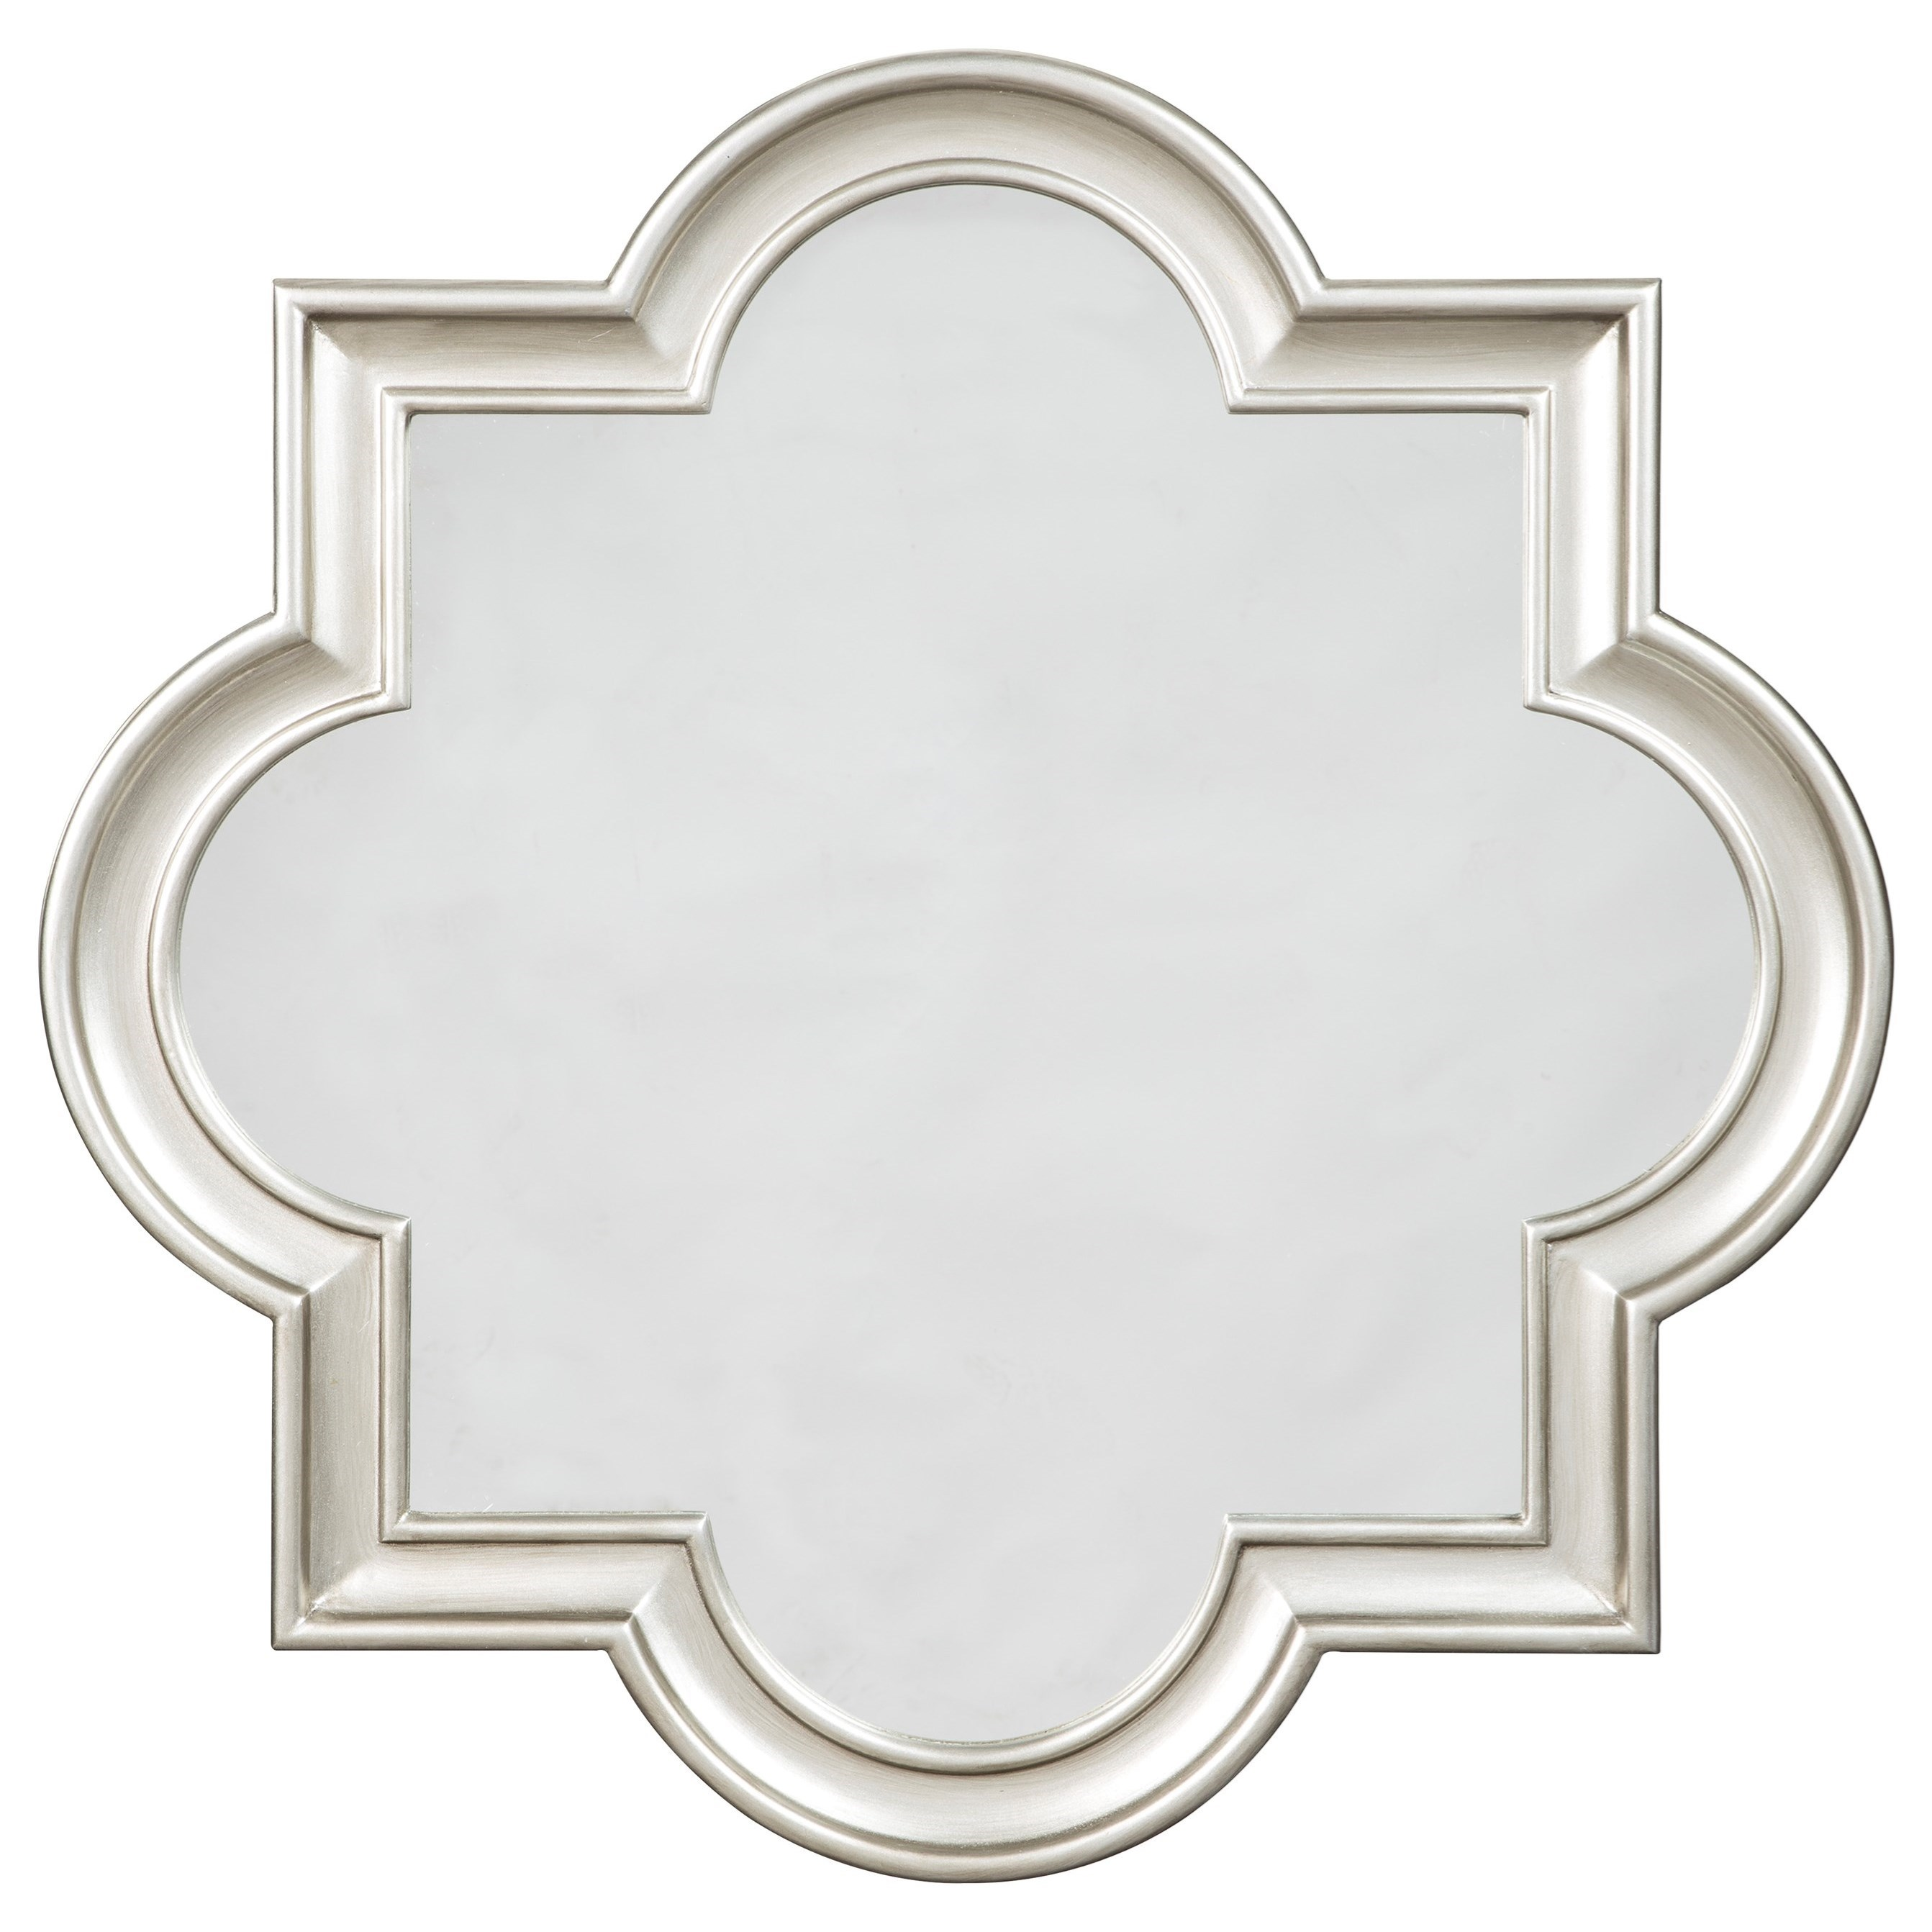 Signature Design by Ashley Accent Mirrors Desma Gold Finish Accent Mirror - Item Number: A8010044